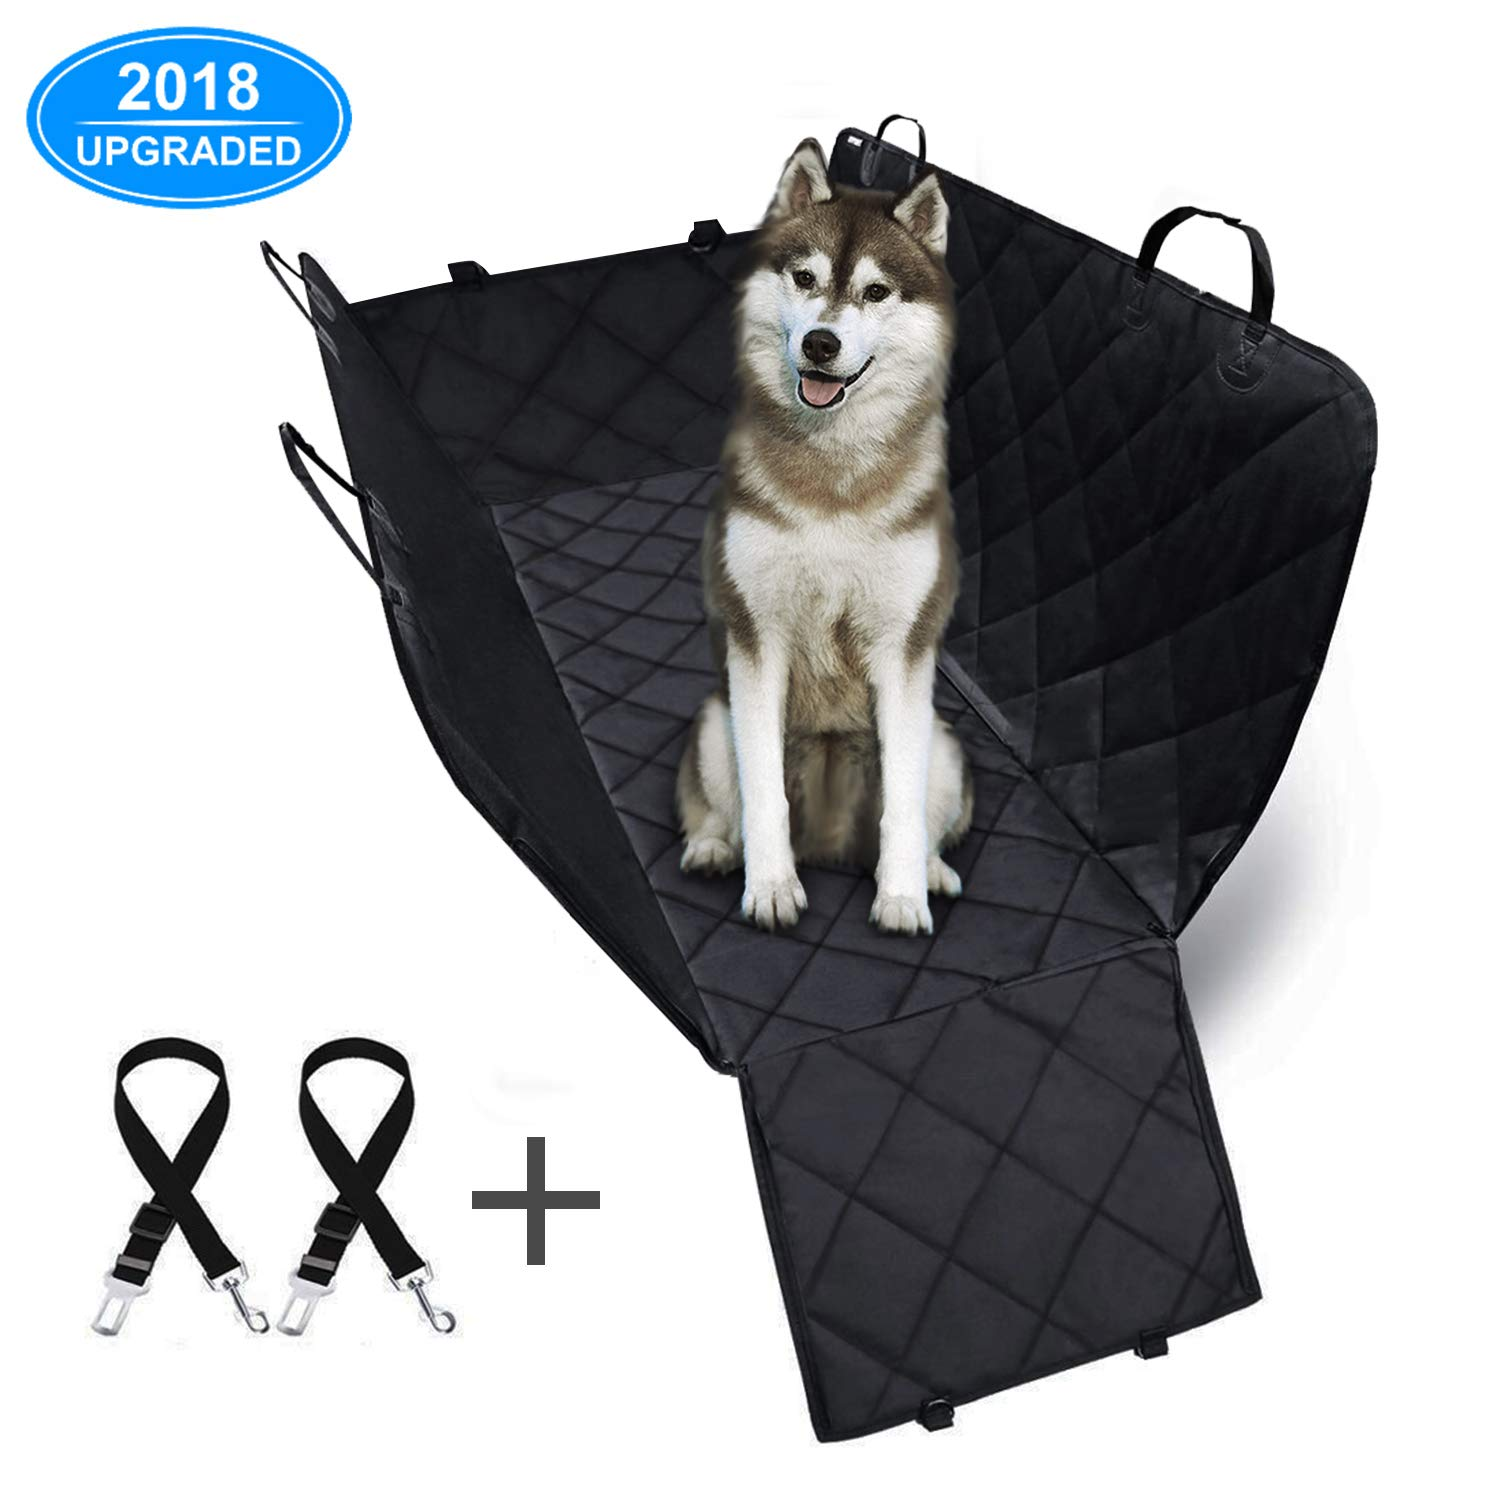 AFBEST Pet Car Seat Cover with side flaps, Dog Car Rear Seat Liner 600D Heavy Duty 100% Waterproof, Scratch-resistant Anti-Slip Durable Pet Seat Hammock for Cars Trucks and SUVs